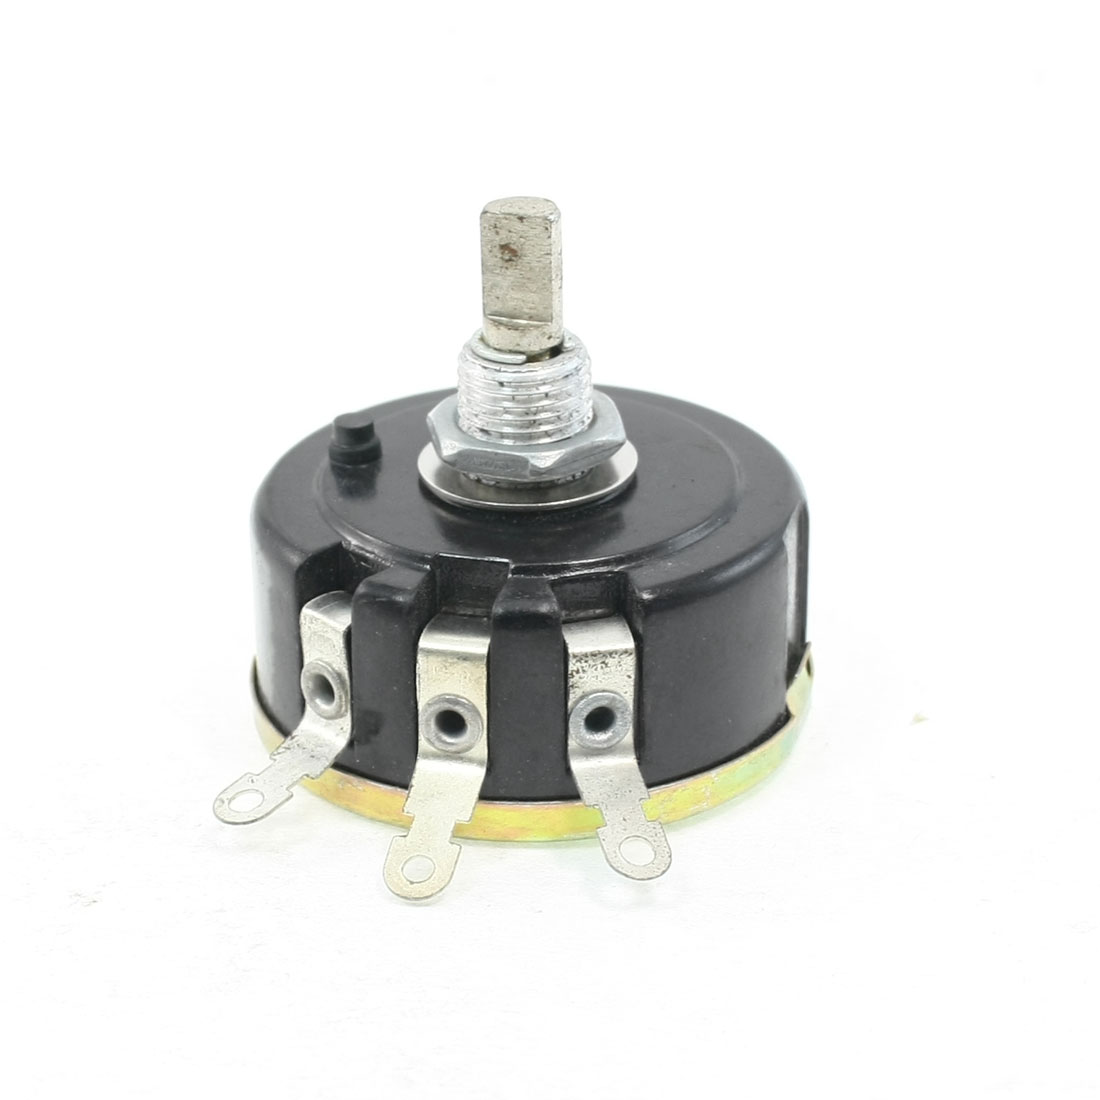 1.5K ohm 6mm Shaft Carbon Composition Rotary Taper Potentiometer